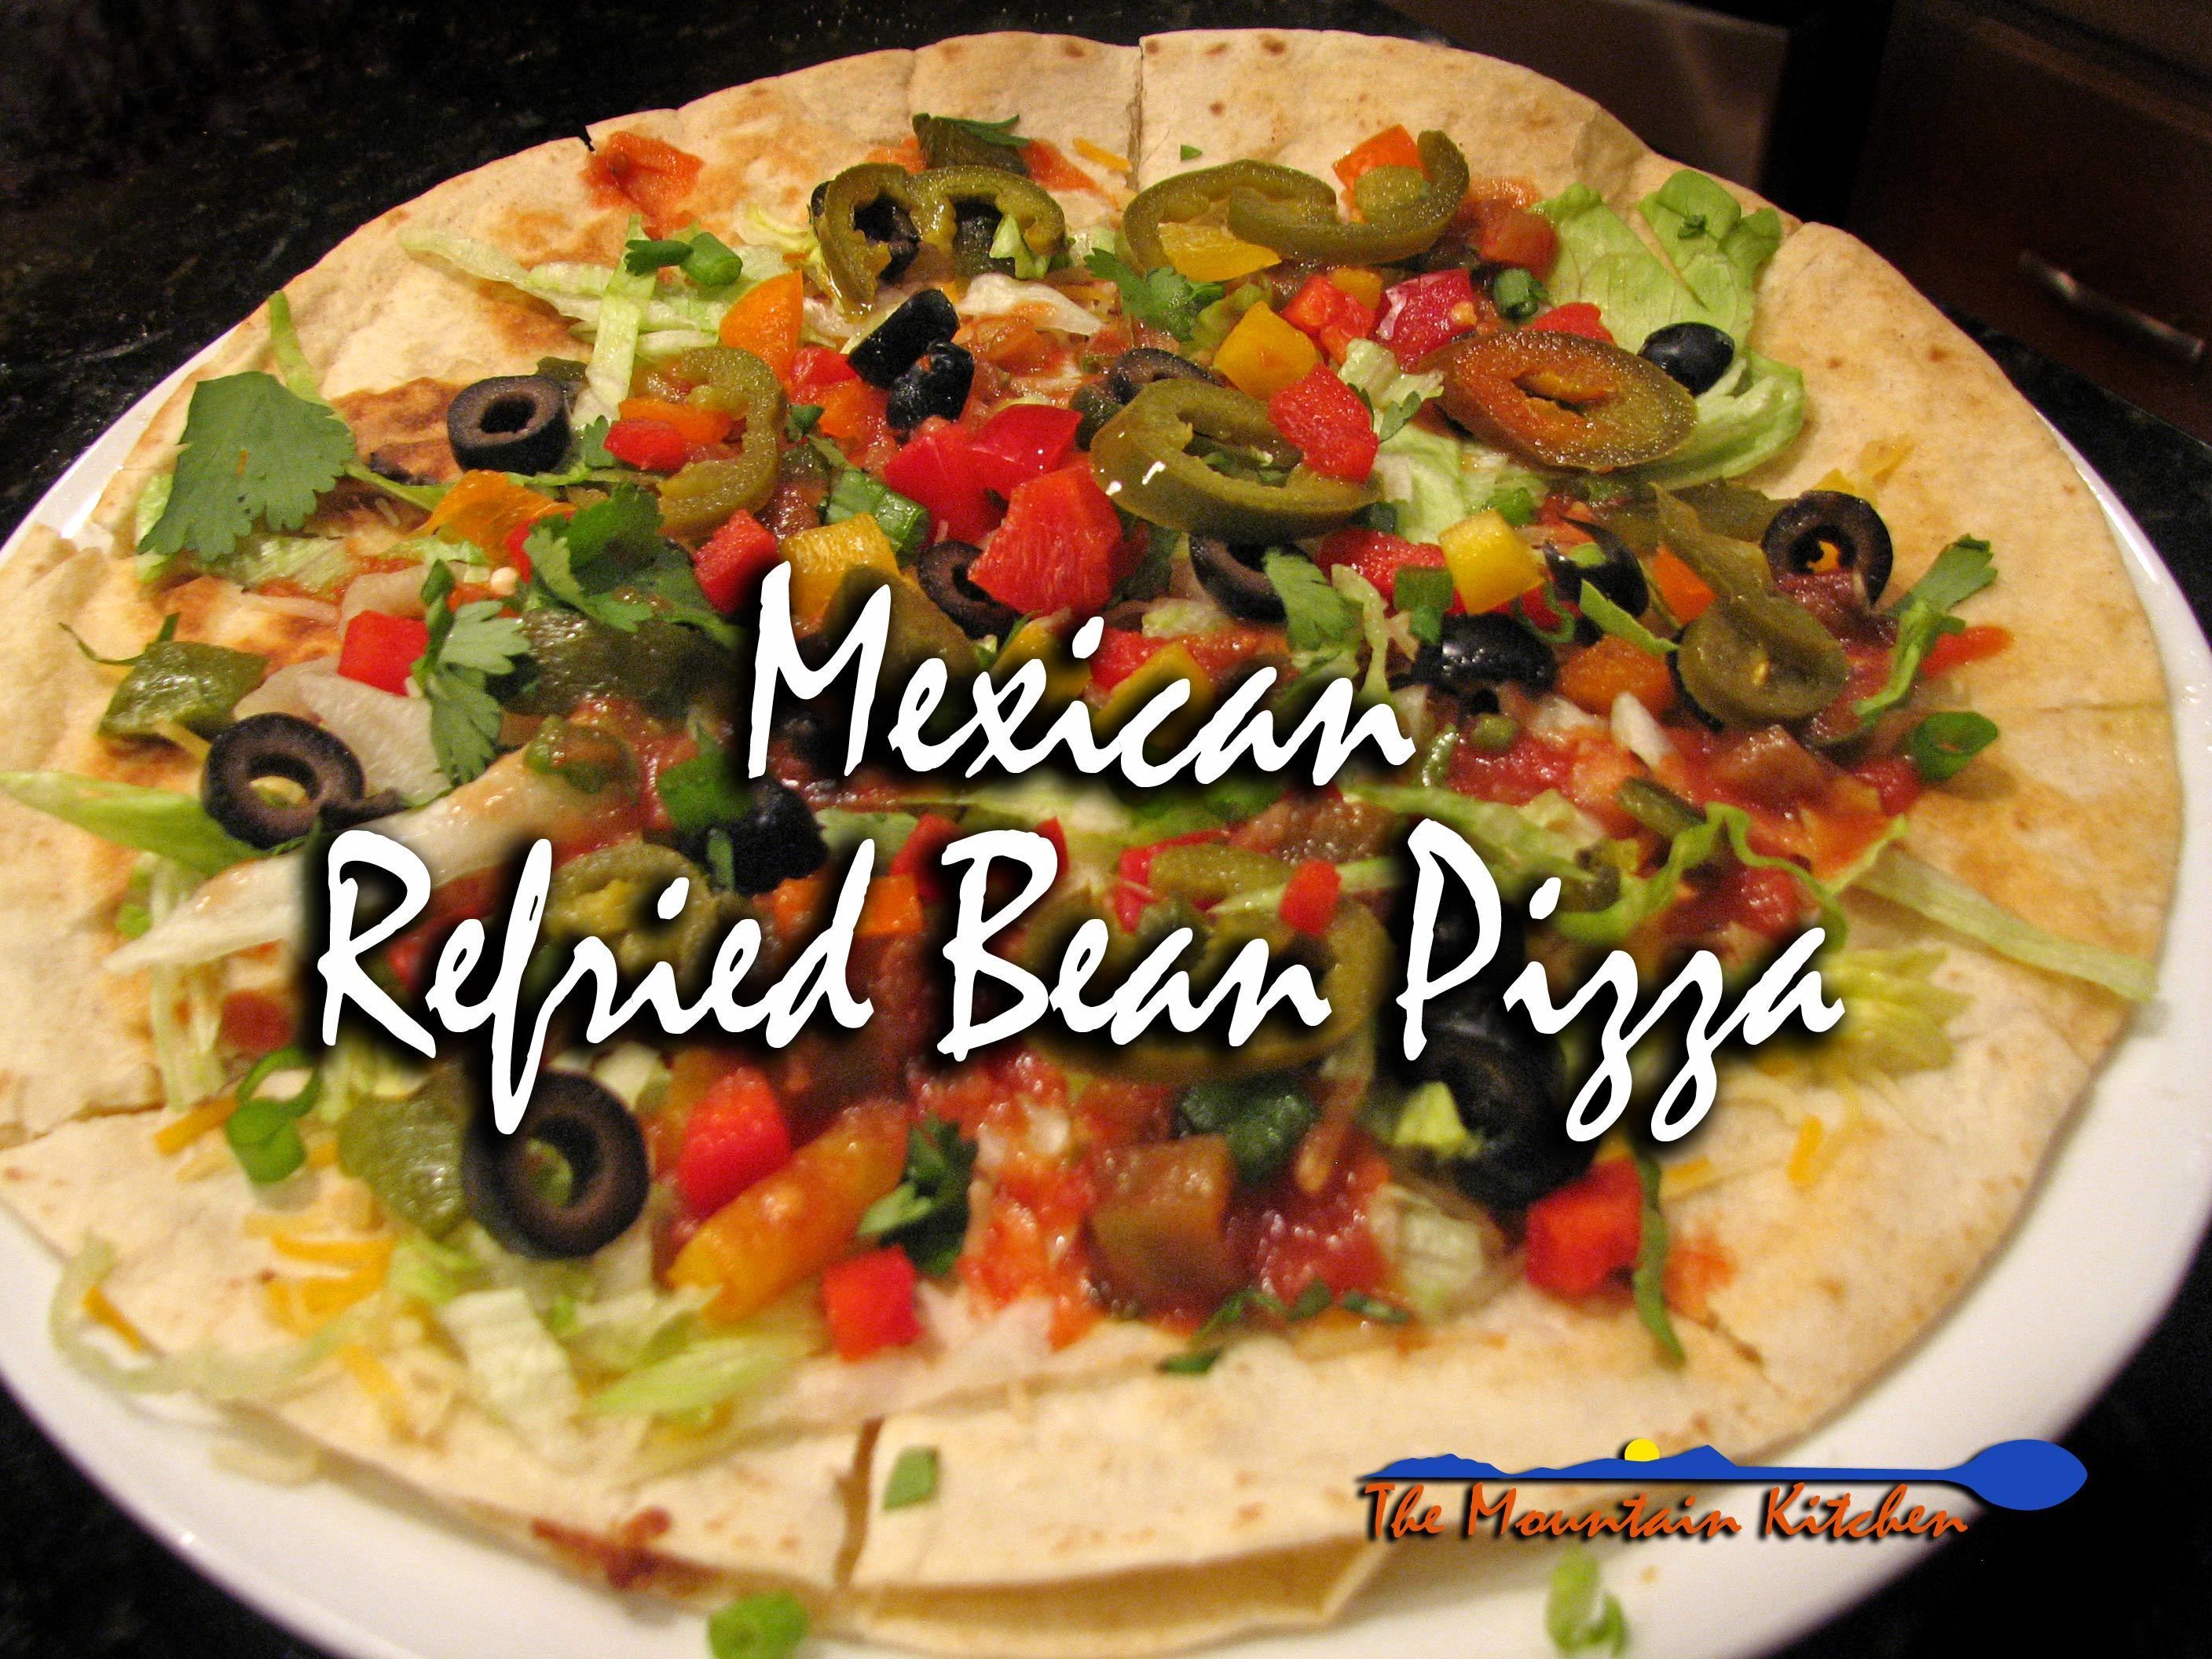 Meatless Monday ~ Mexican Refried Bean Pizza